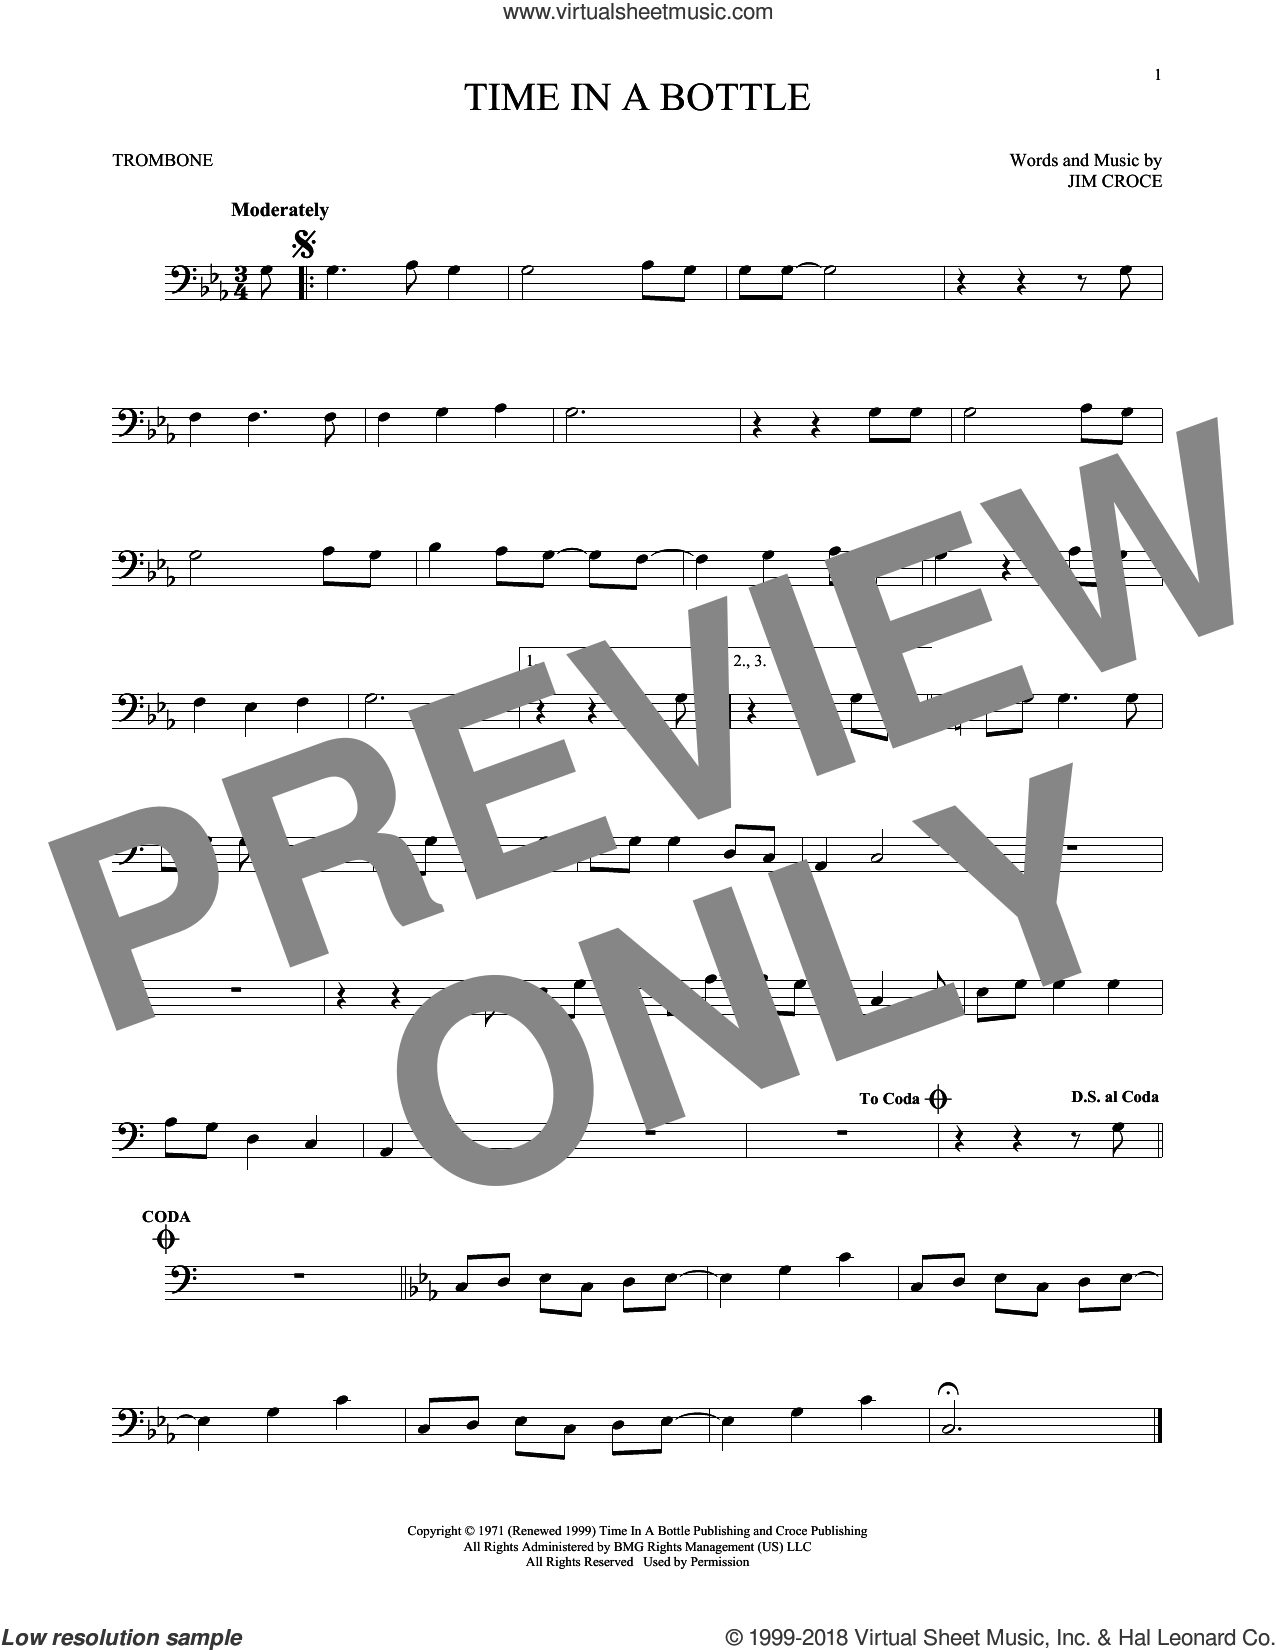 Time In A Bottle sheet music for trombone solo by Jim Croce, intermediate skill level